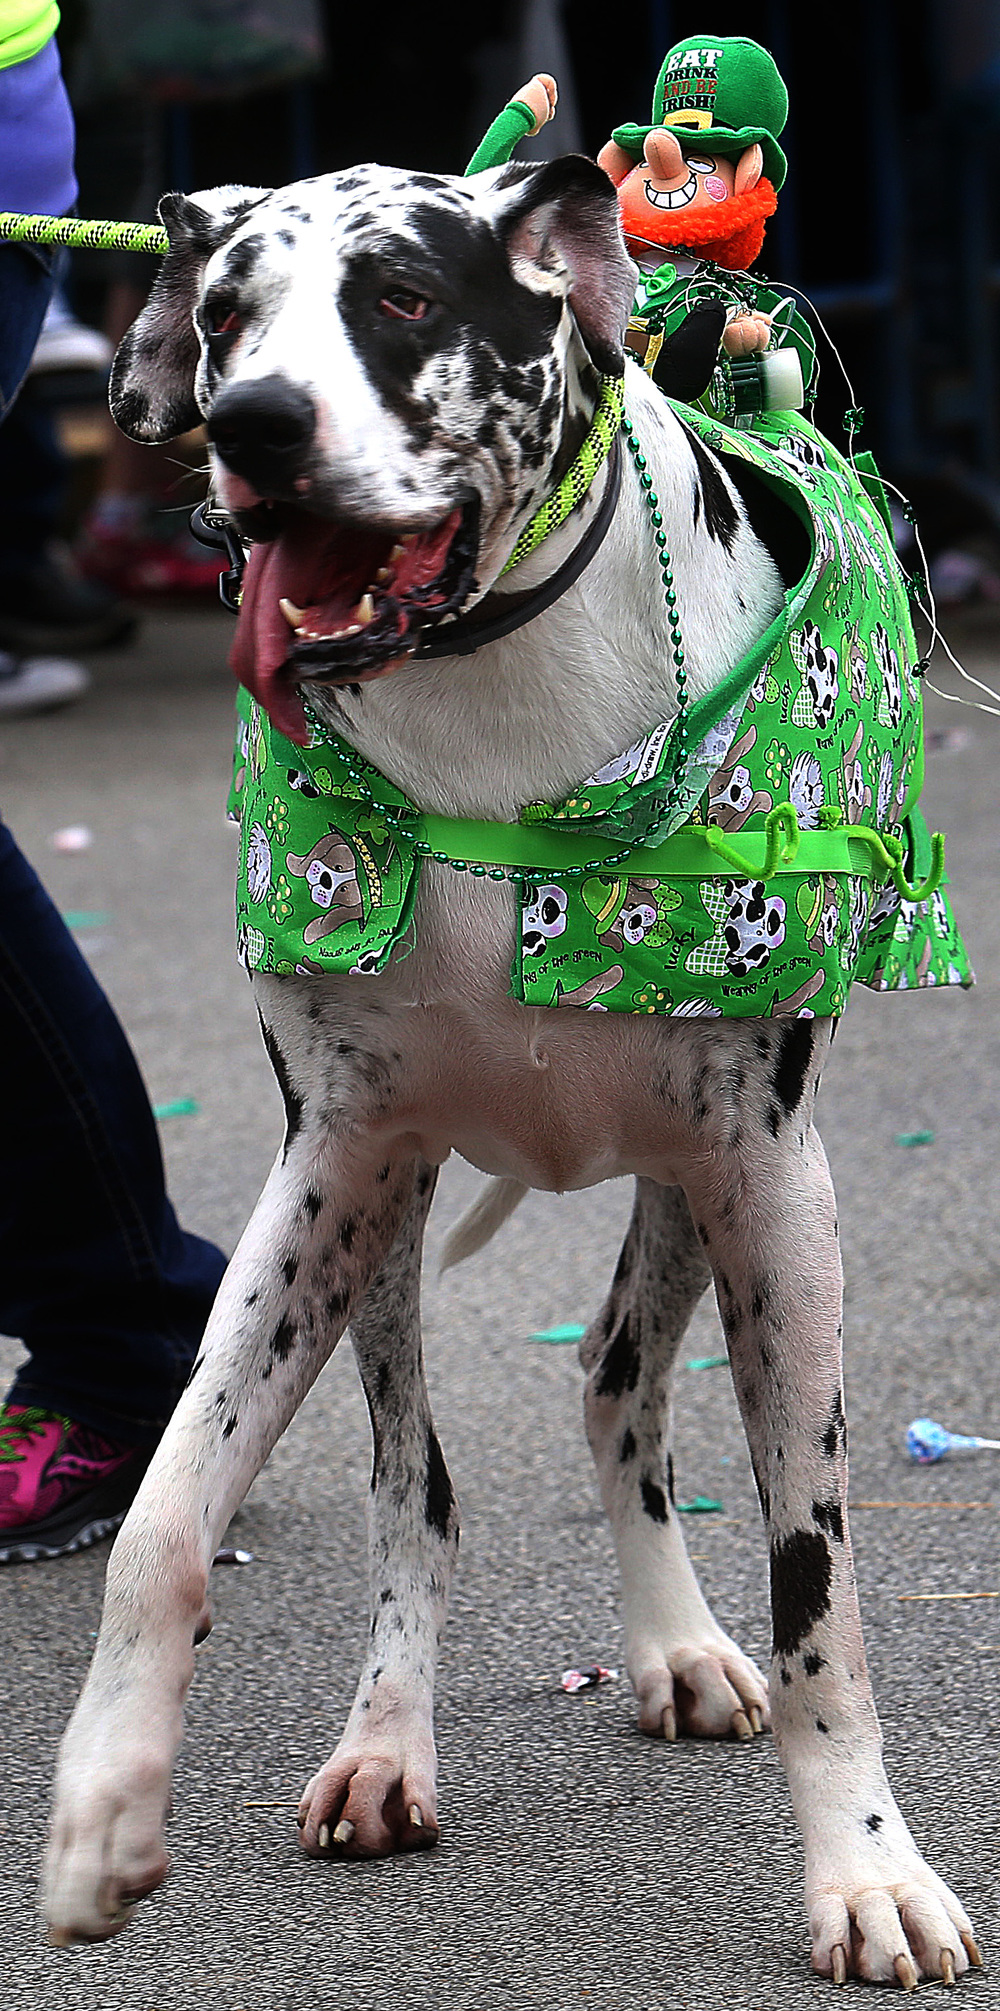 Canines, including this Great Dane who was taking a toy plush leprechaun for a ride on its' back, were spotted along the parade route. David Spencer/The State Journal Register